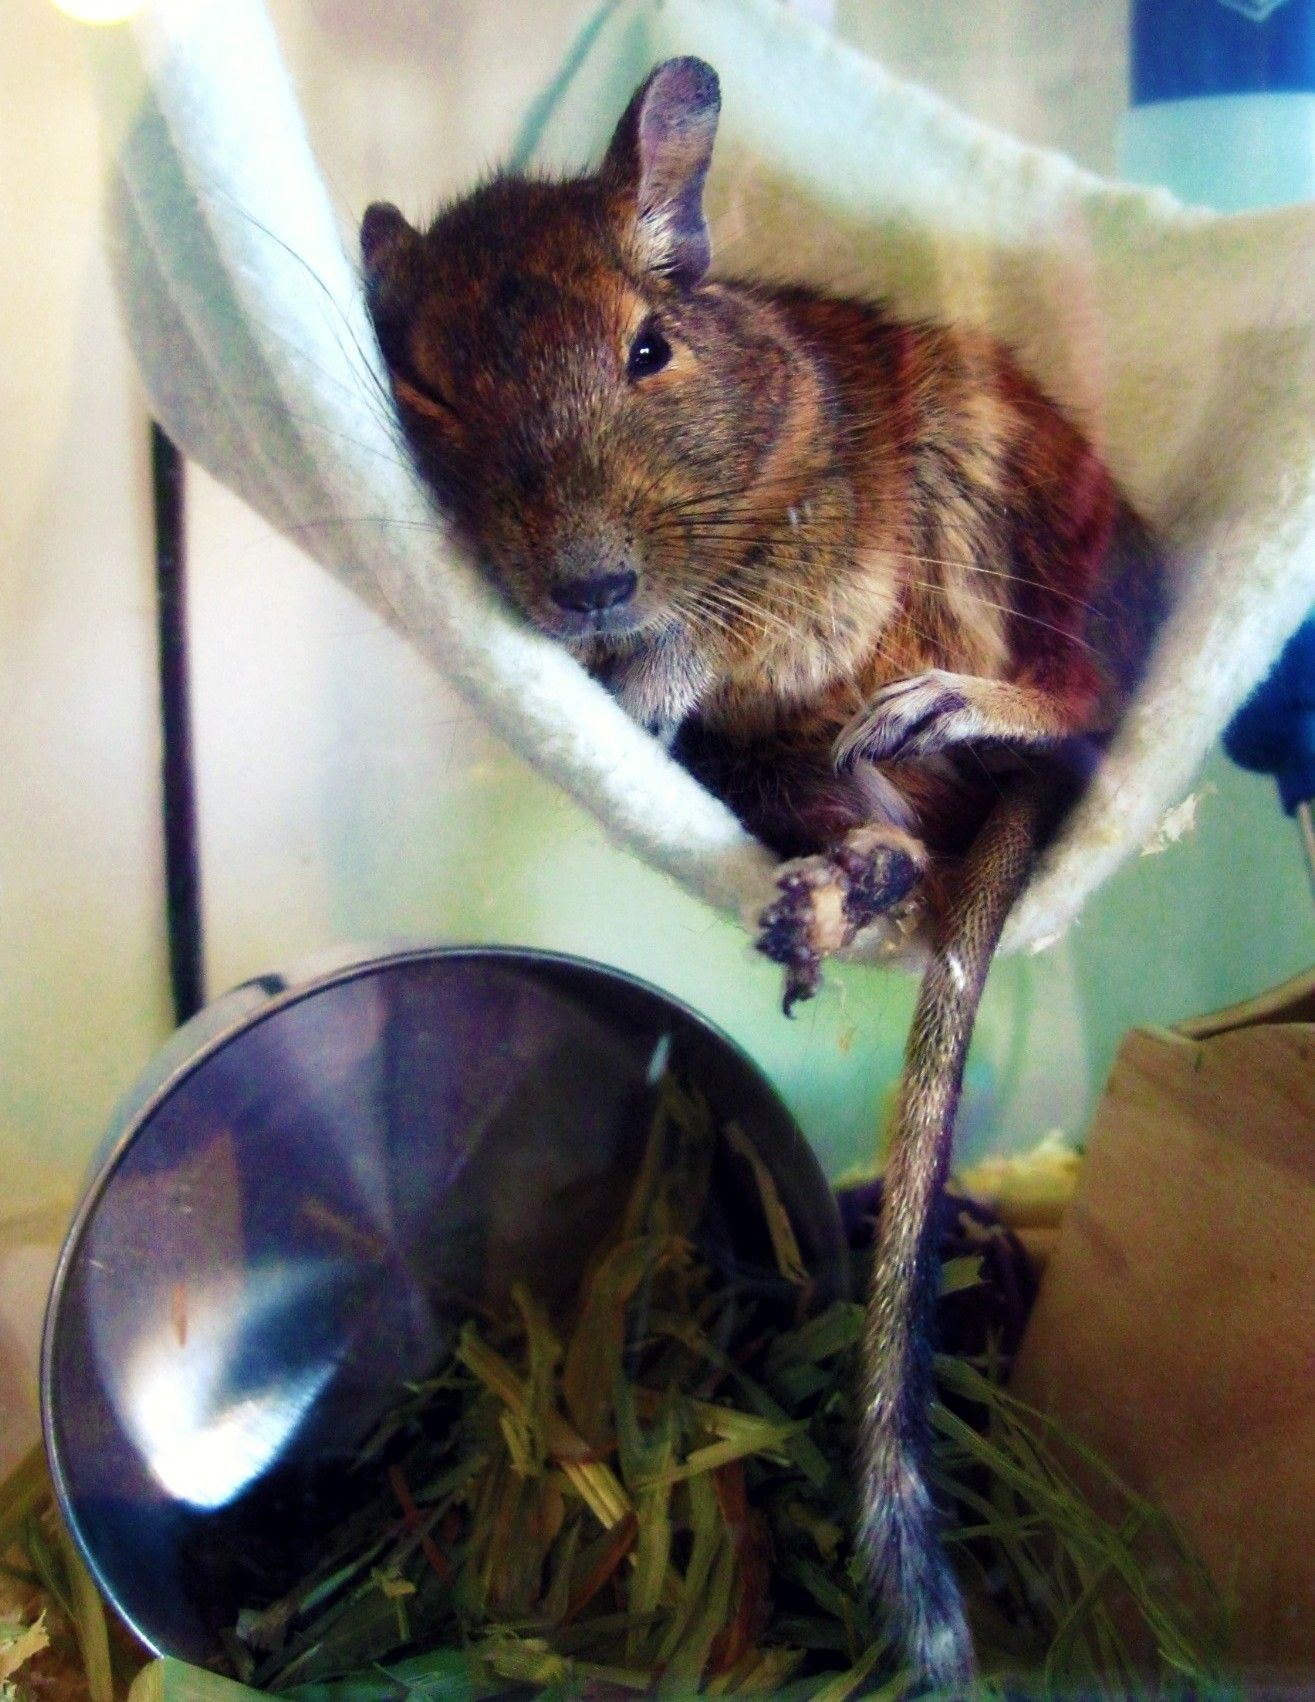 Maybe A Chinchilla Should Have A Degu Buddy One Of The Many Reasons Degus Are Amazing Animals Not Only Do They Sing Like A Bubbling Bir Degus Degu Small Pets